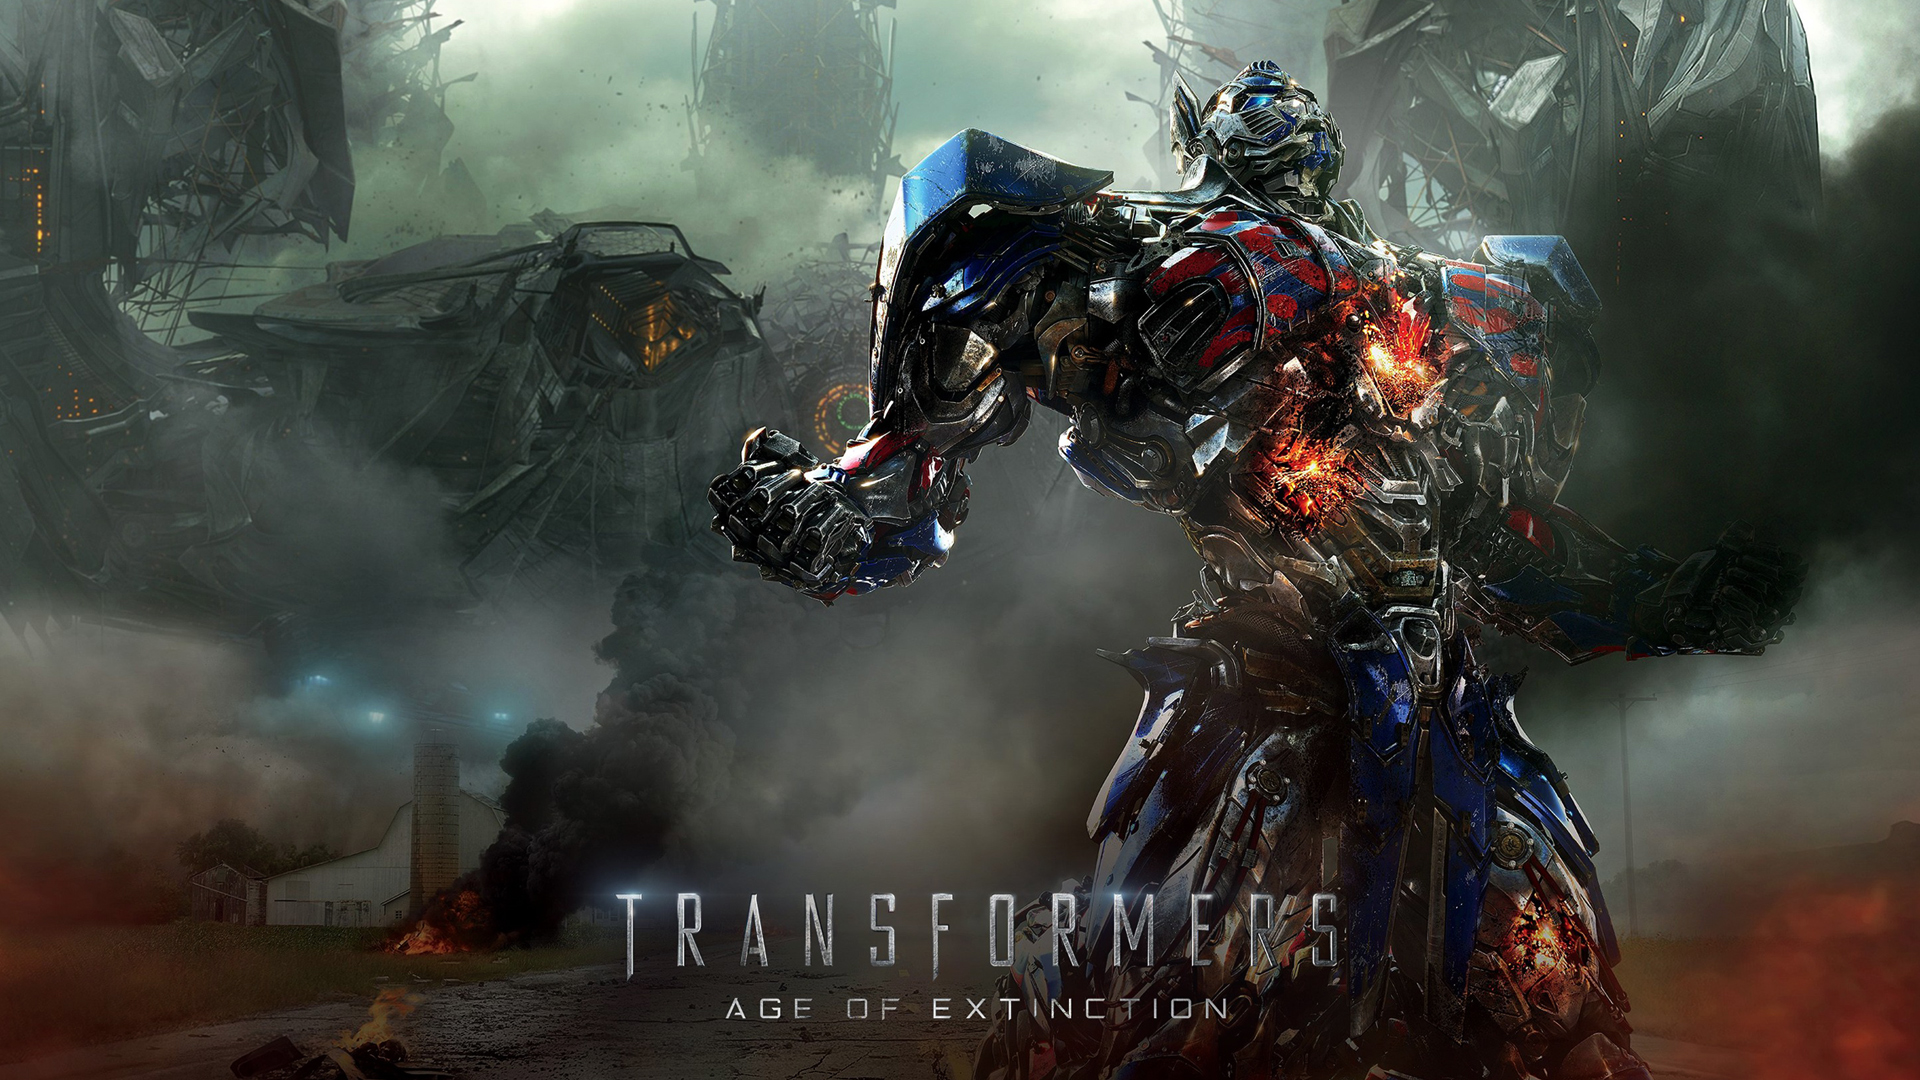 Optimus Prime Transformers Age of Extinction movie 4. HD 1920x1080 ...